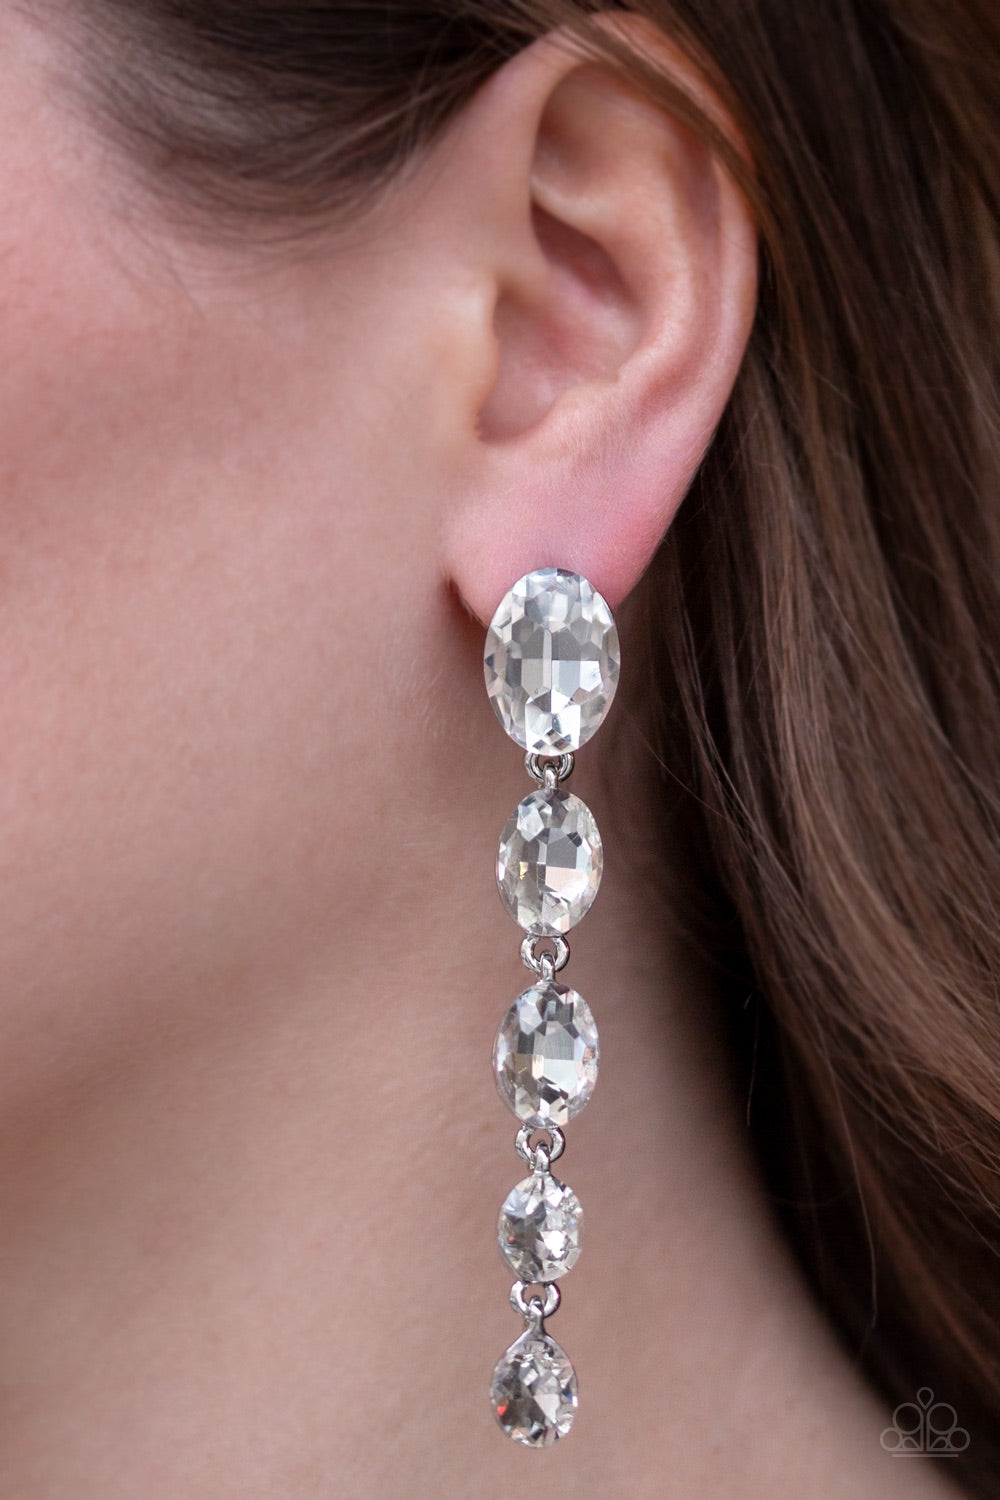 Paparazzi Jewelry Earrings Red Carpet Radiance - White